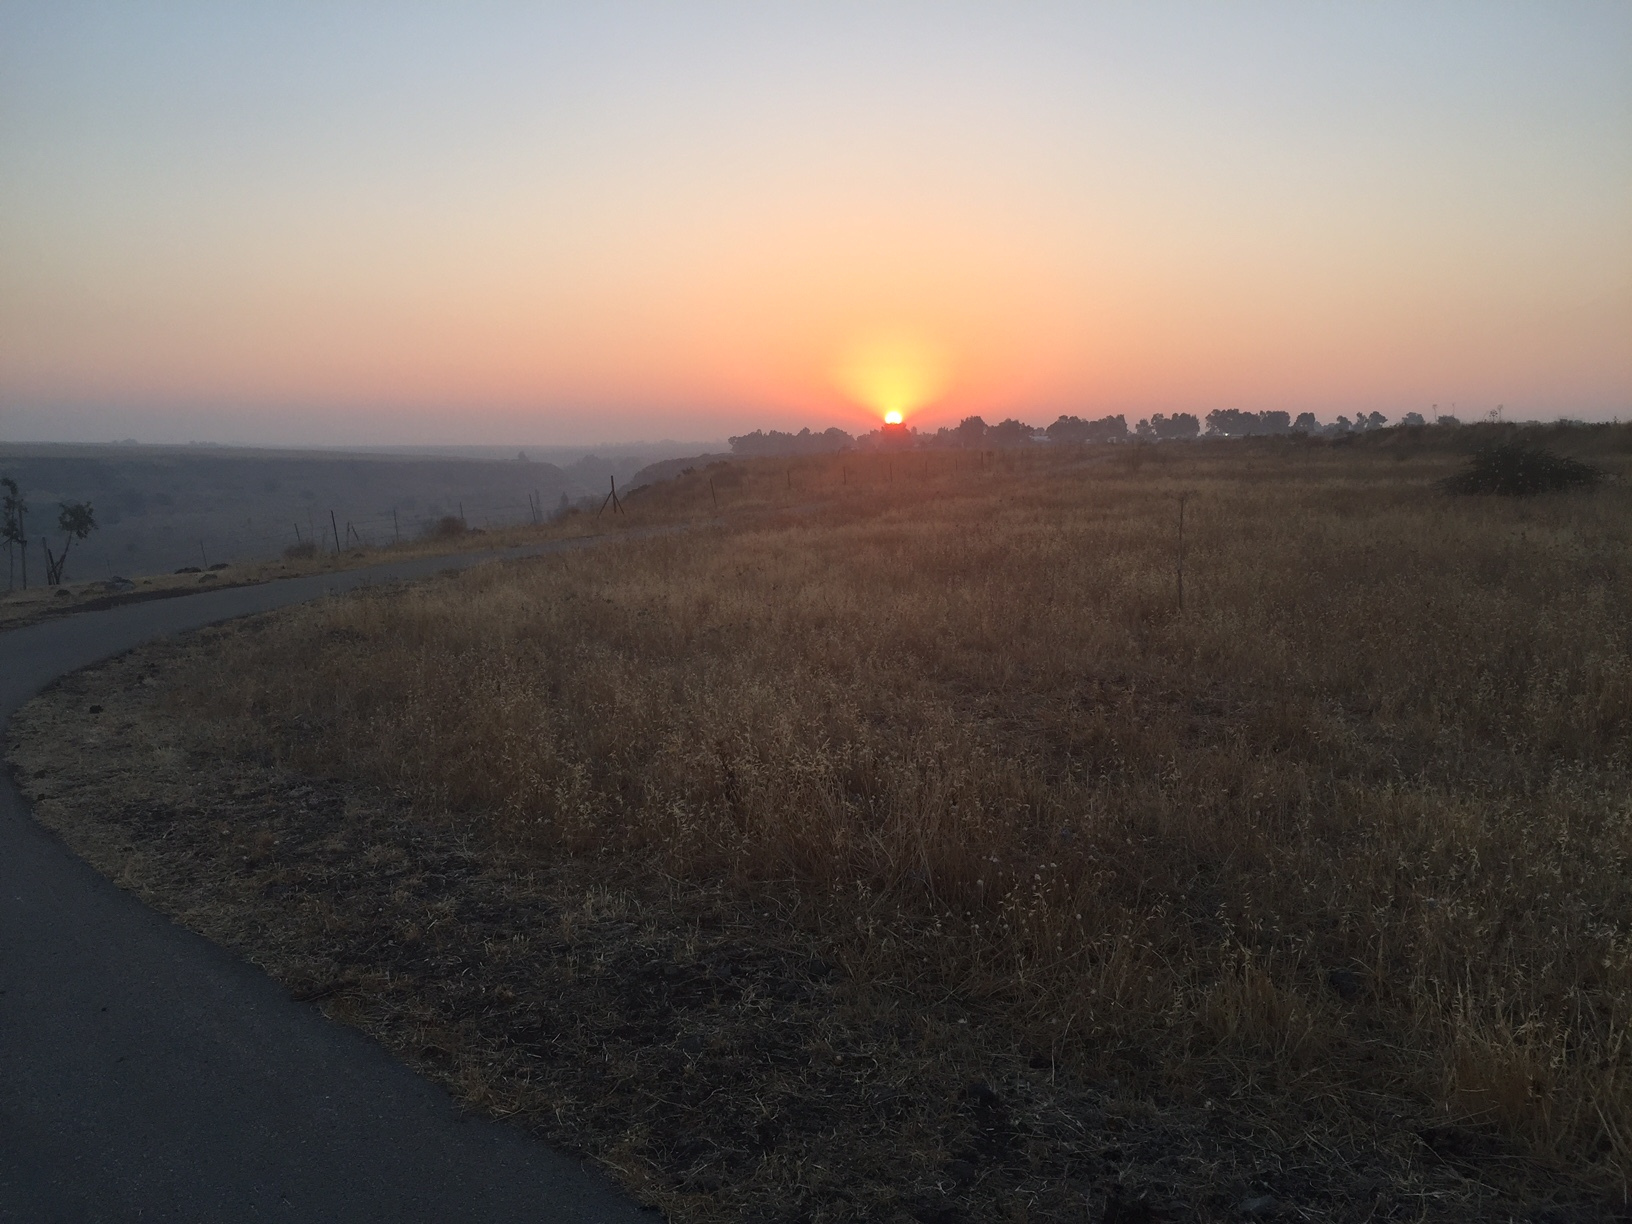 Sunrise at the Golan Heights